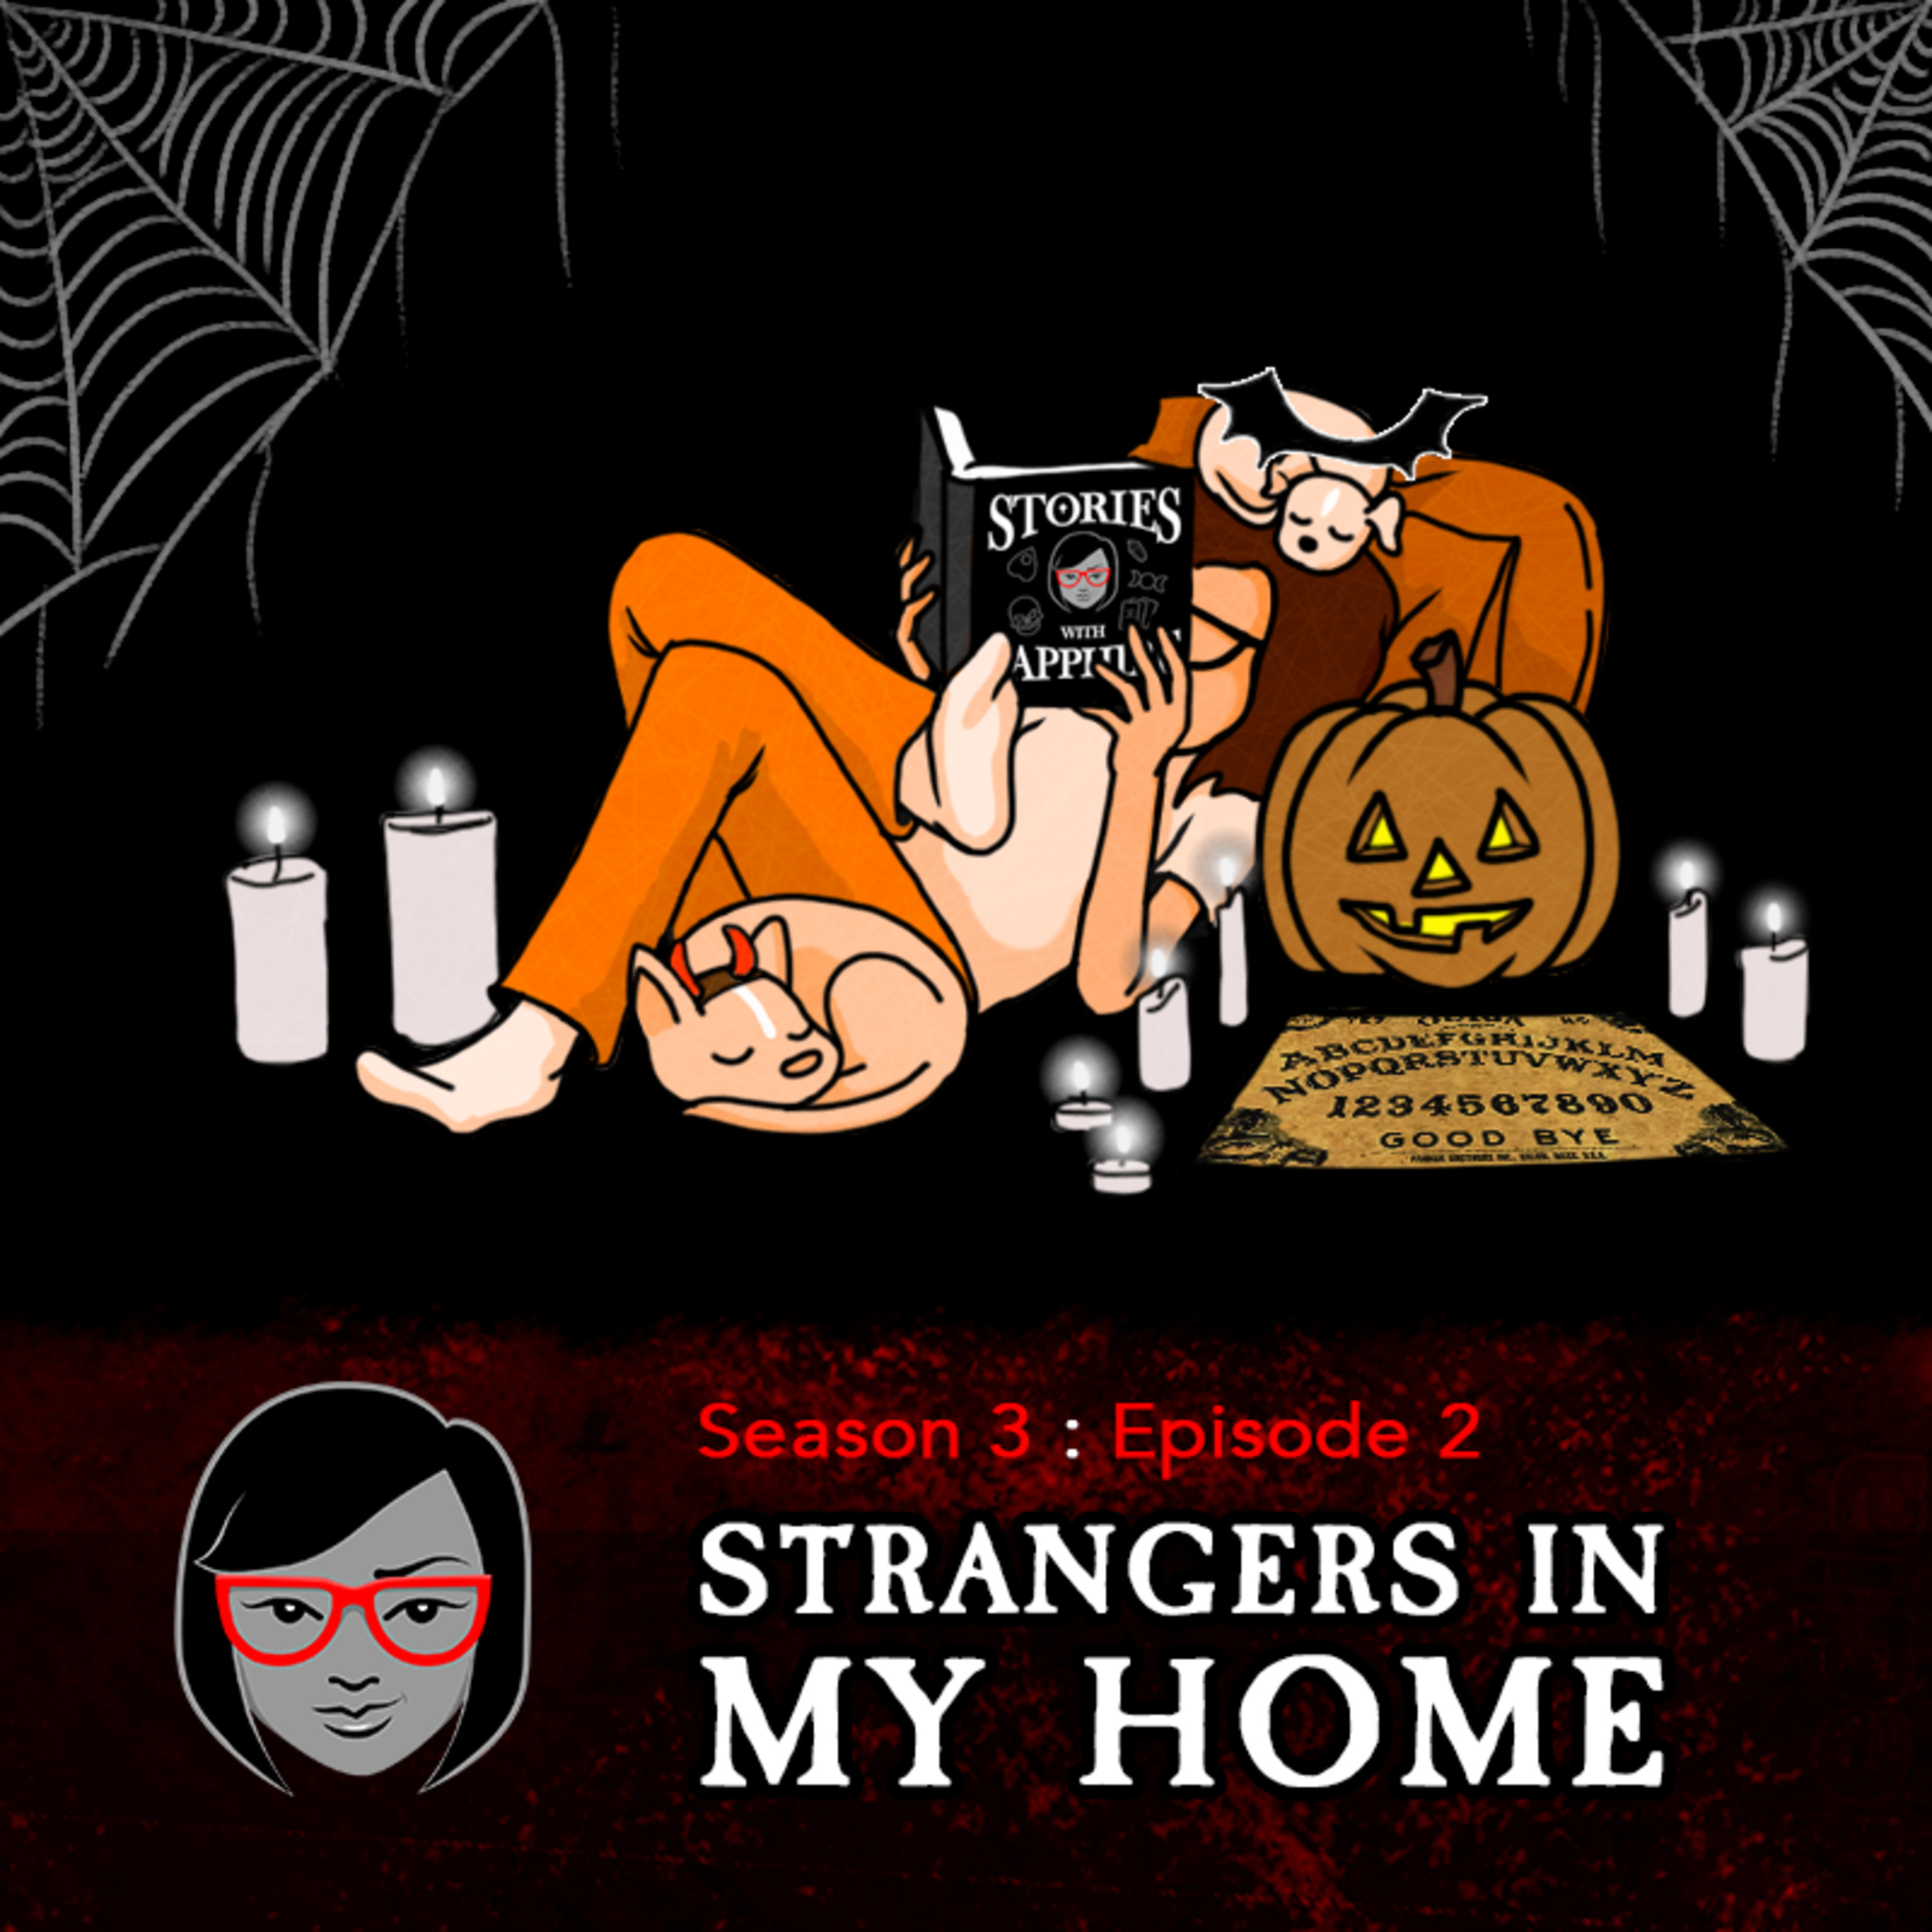 Strangers In My Home